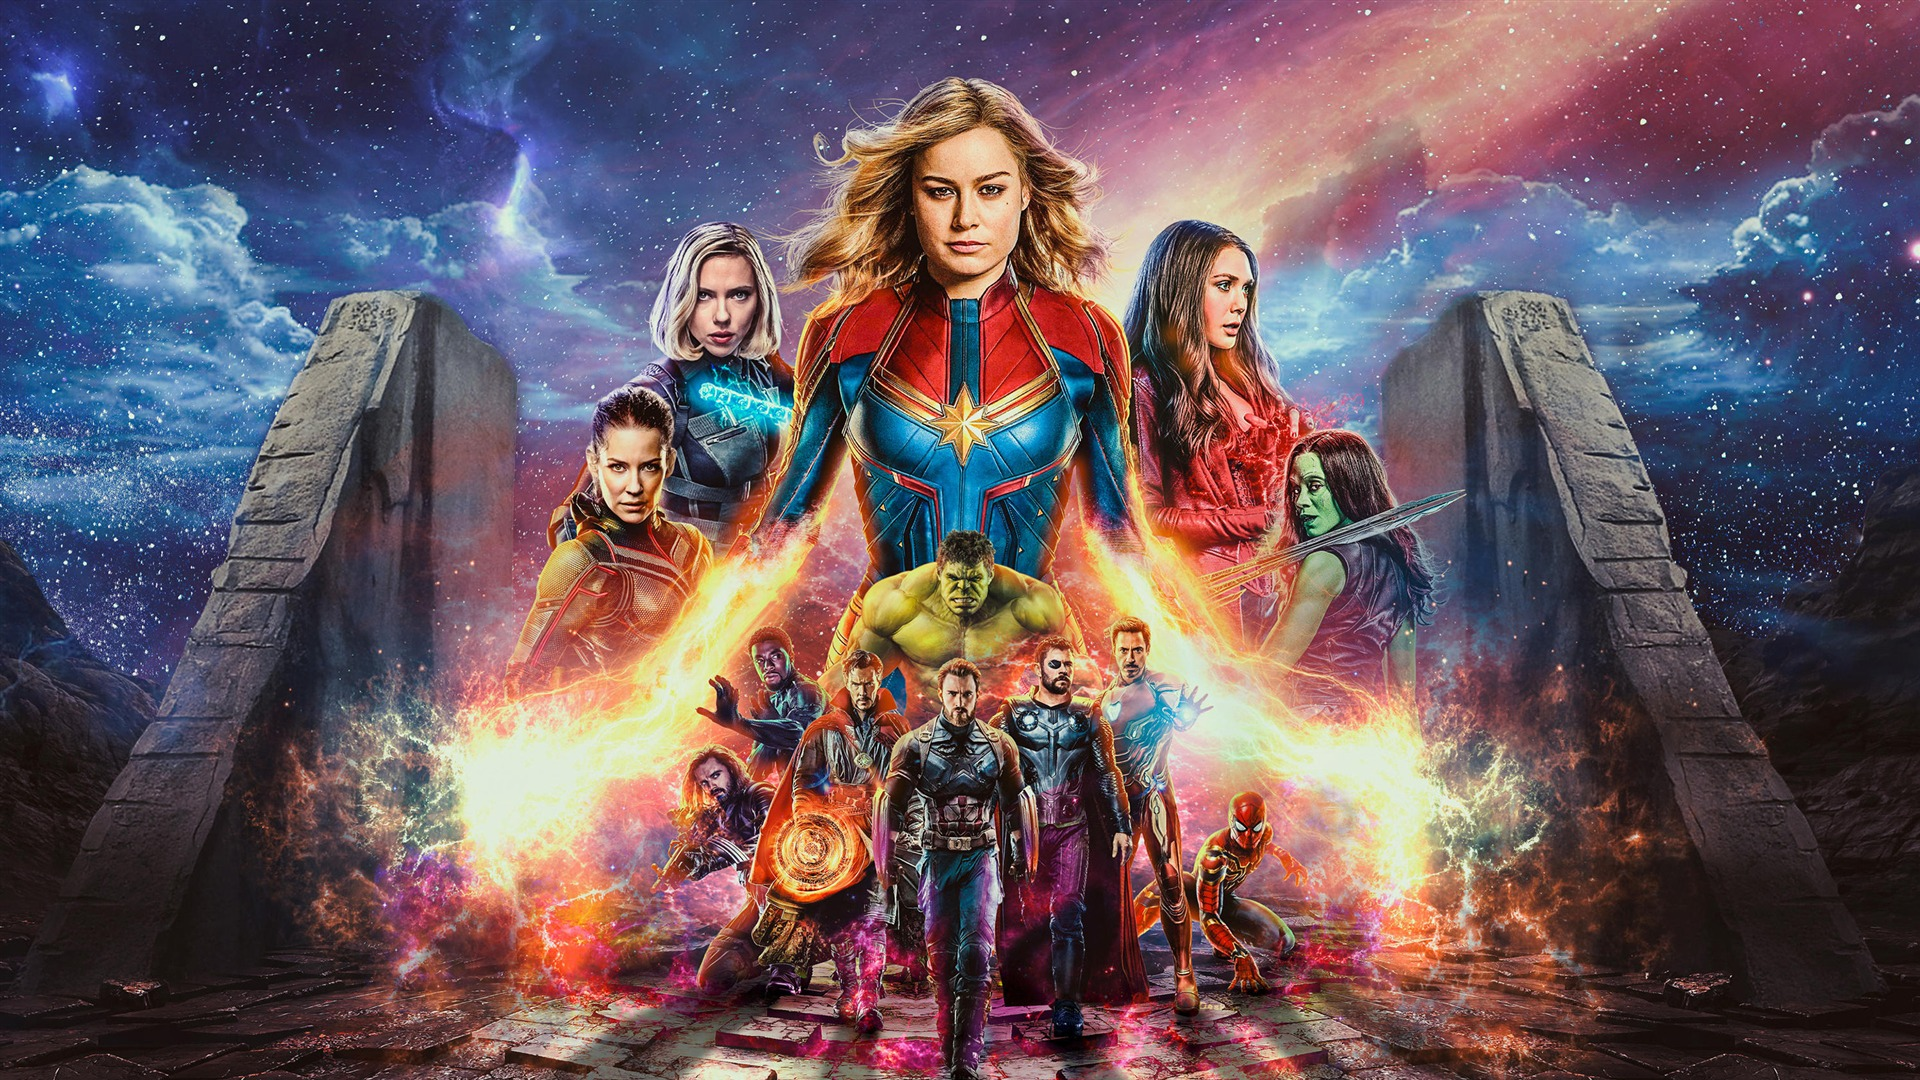 Captain Marvel Avengers Endgame Movie Wallpaper High Quality